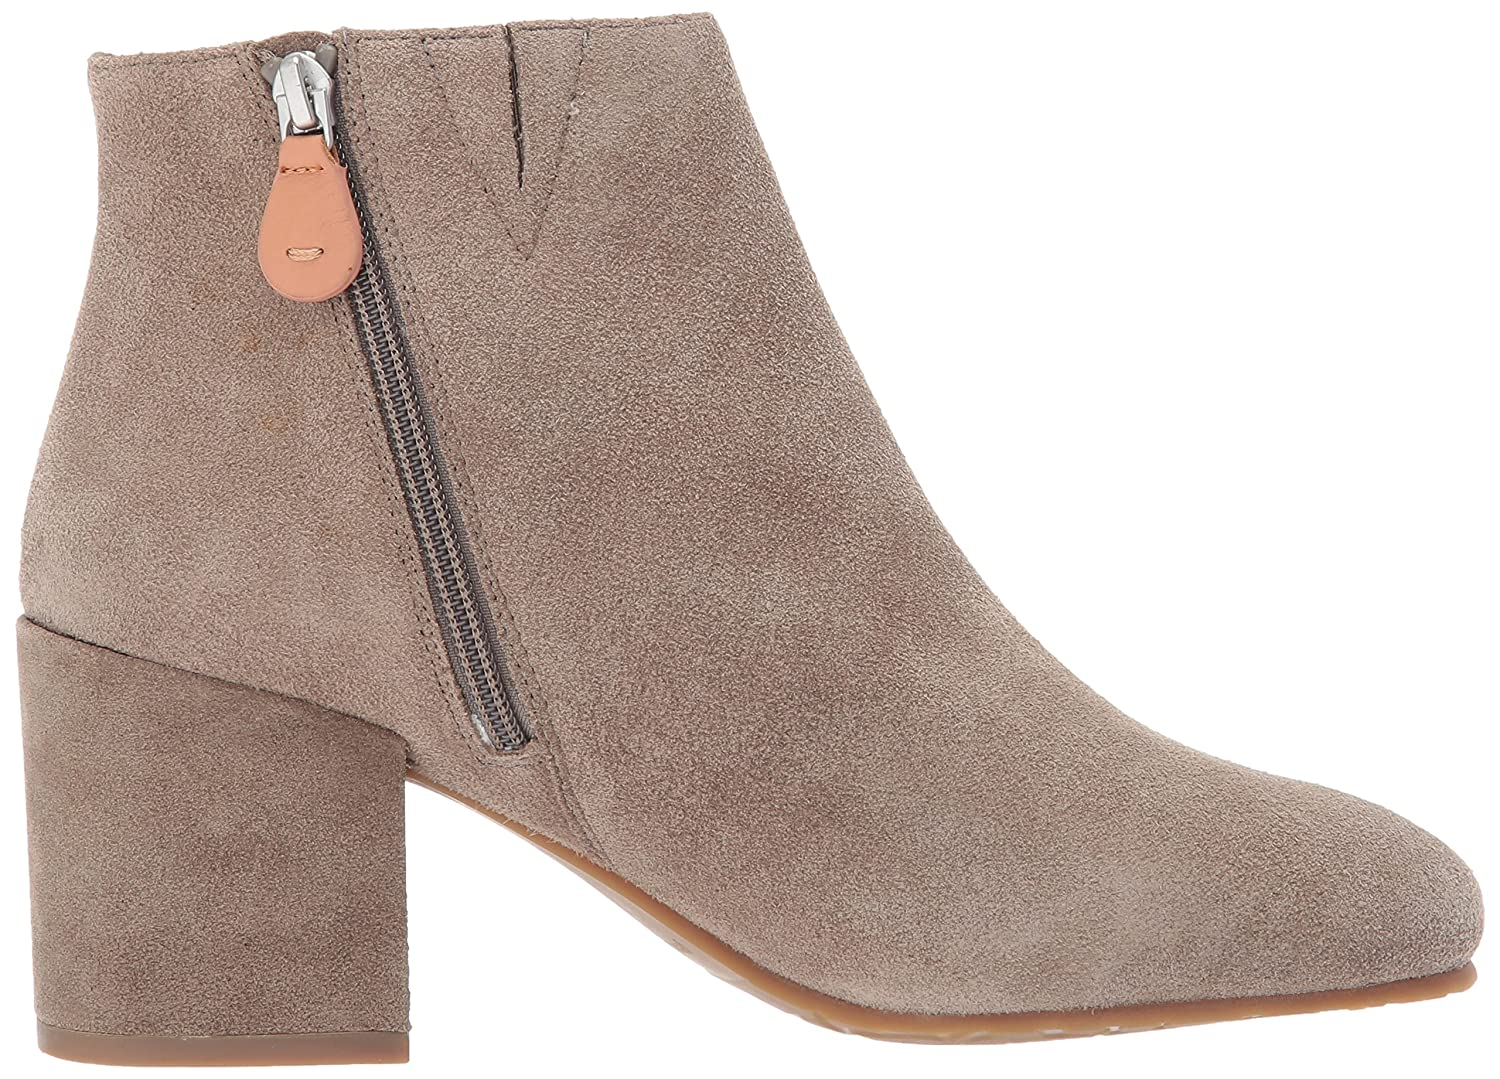 Gentle Souls by Kenneth Cole Women's Blaise Ankle Bootie with Side Zip, Covered Block Heel Suede Ankle Bootie B06XXNHC6N 5.5 M US|Sage